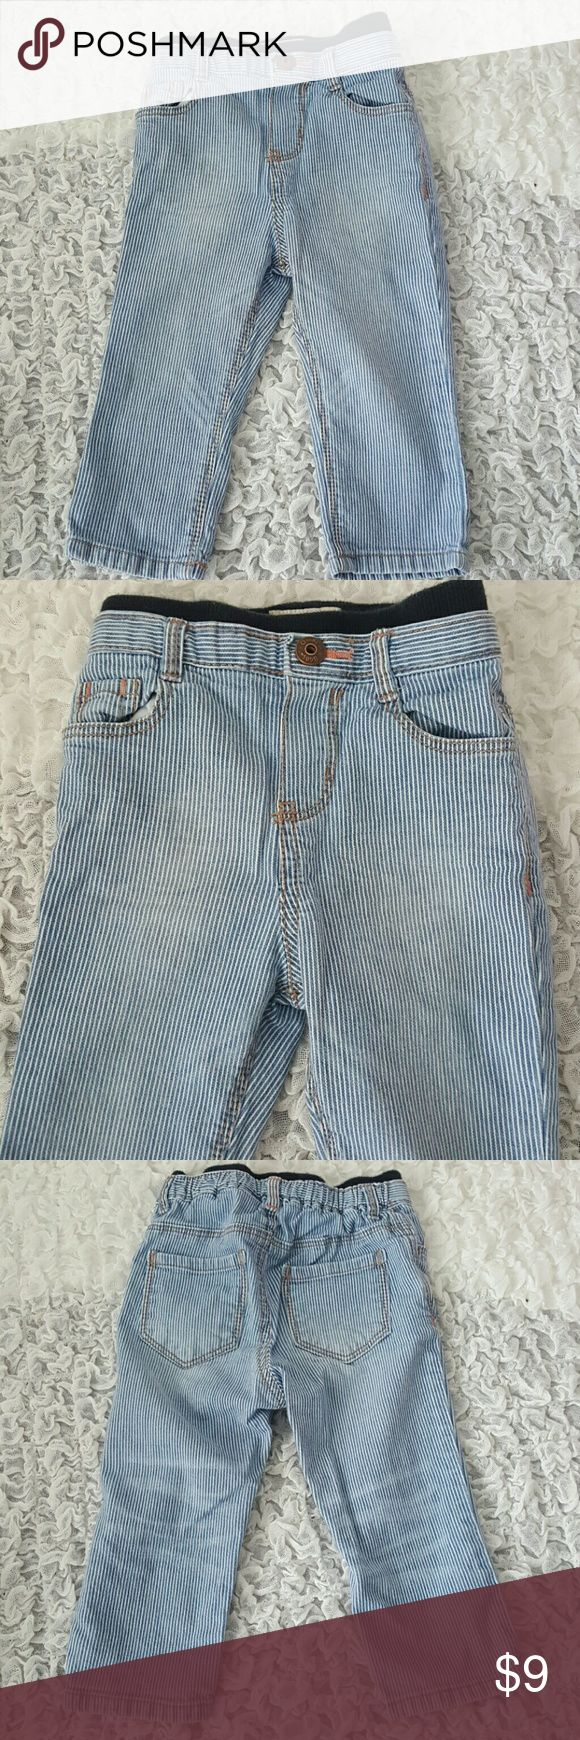 Oshkosh Blue Jeans 18 Months  Baby Girl Oshkosh Blue Jeans  Strechy waist band Osh Kosh Bottoms Jeans